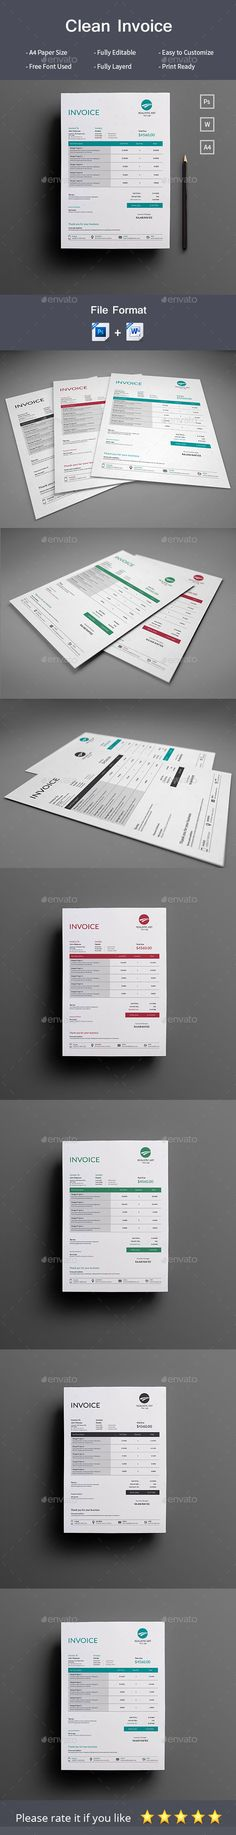 Buy Invoice by RealisticArt on GraphicRiver. This Minimal Invoice will help you in your business to save time, organize you product data and customers info and ea. Invoice Design, Invoice Template, Resume Templates, Graphic Design Print, Graphic Design Inspiration, Layout, Proposal Templates, Print Templates, Stationery